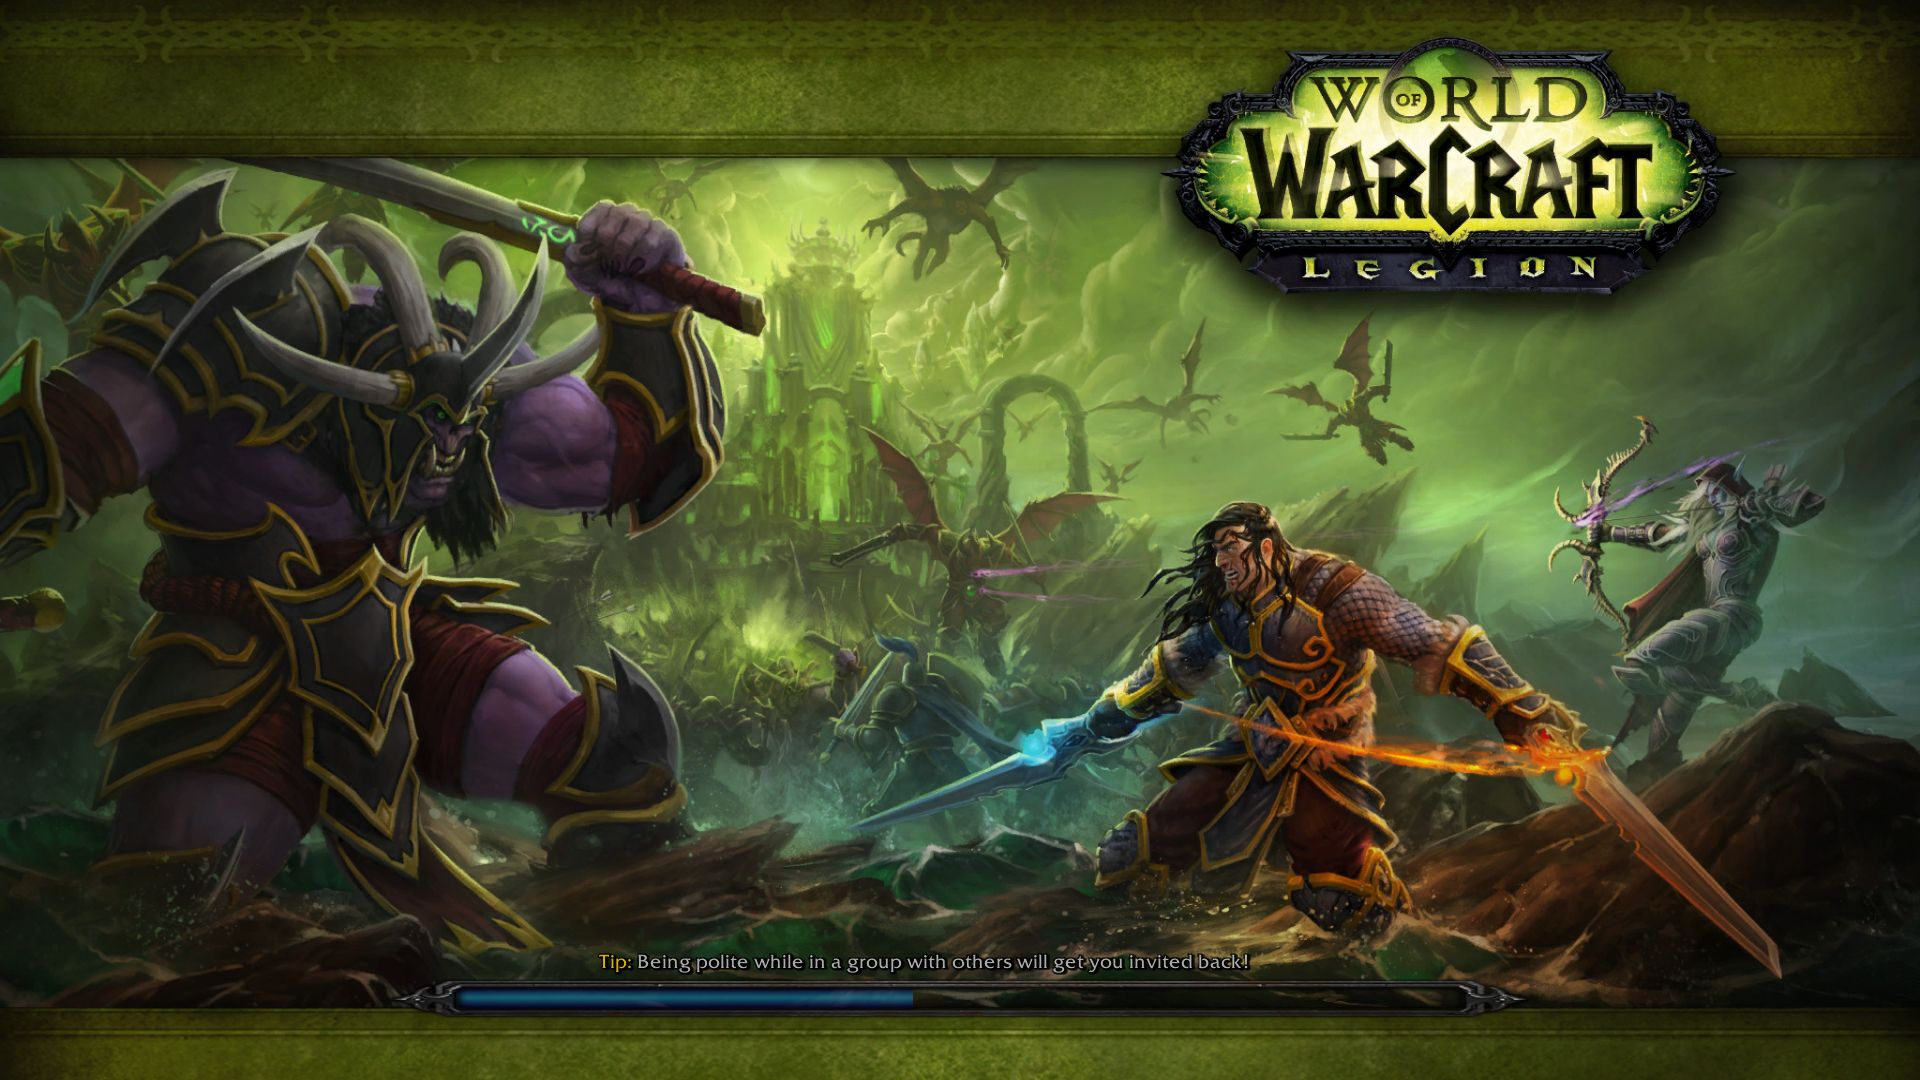 Blizzard Plans to Sue Lilith Games for Ripping-Off Assets From WoW ...